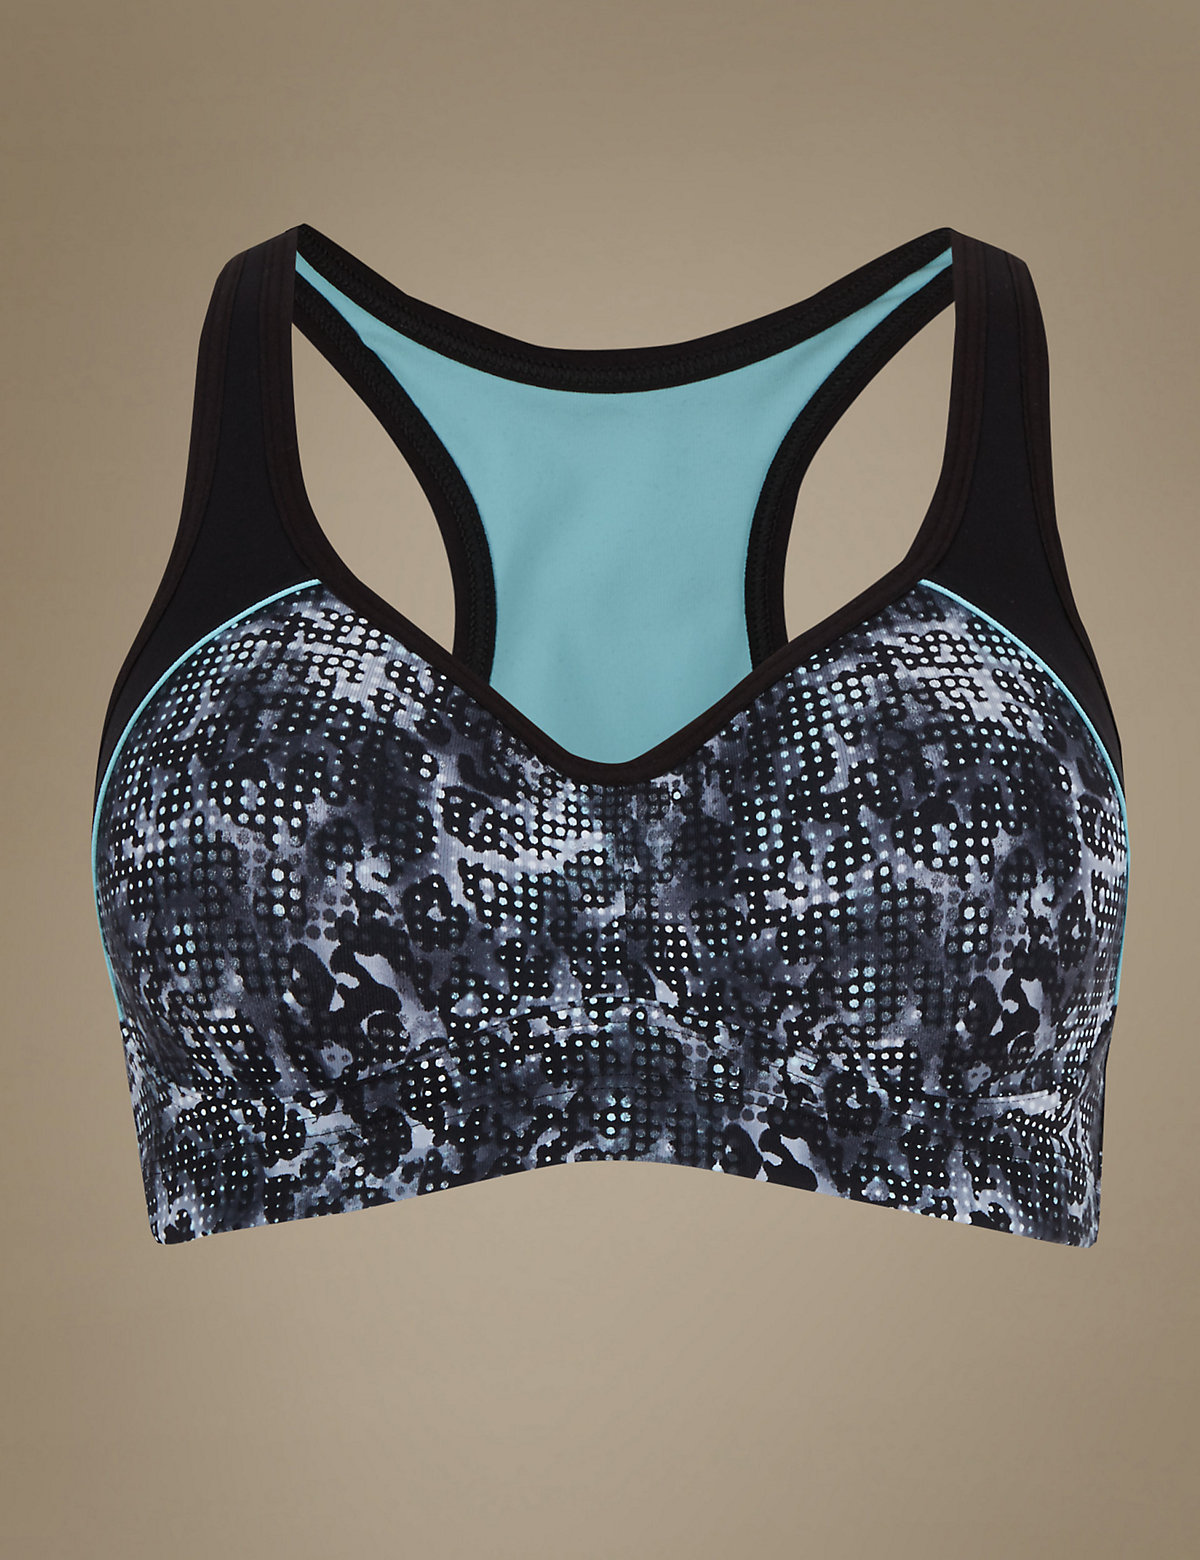 M&s Collection Breathable High Impact Underwired Padded Sports Bra A-dd